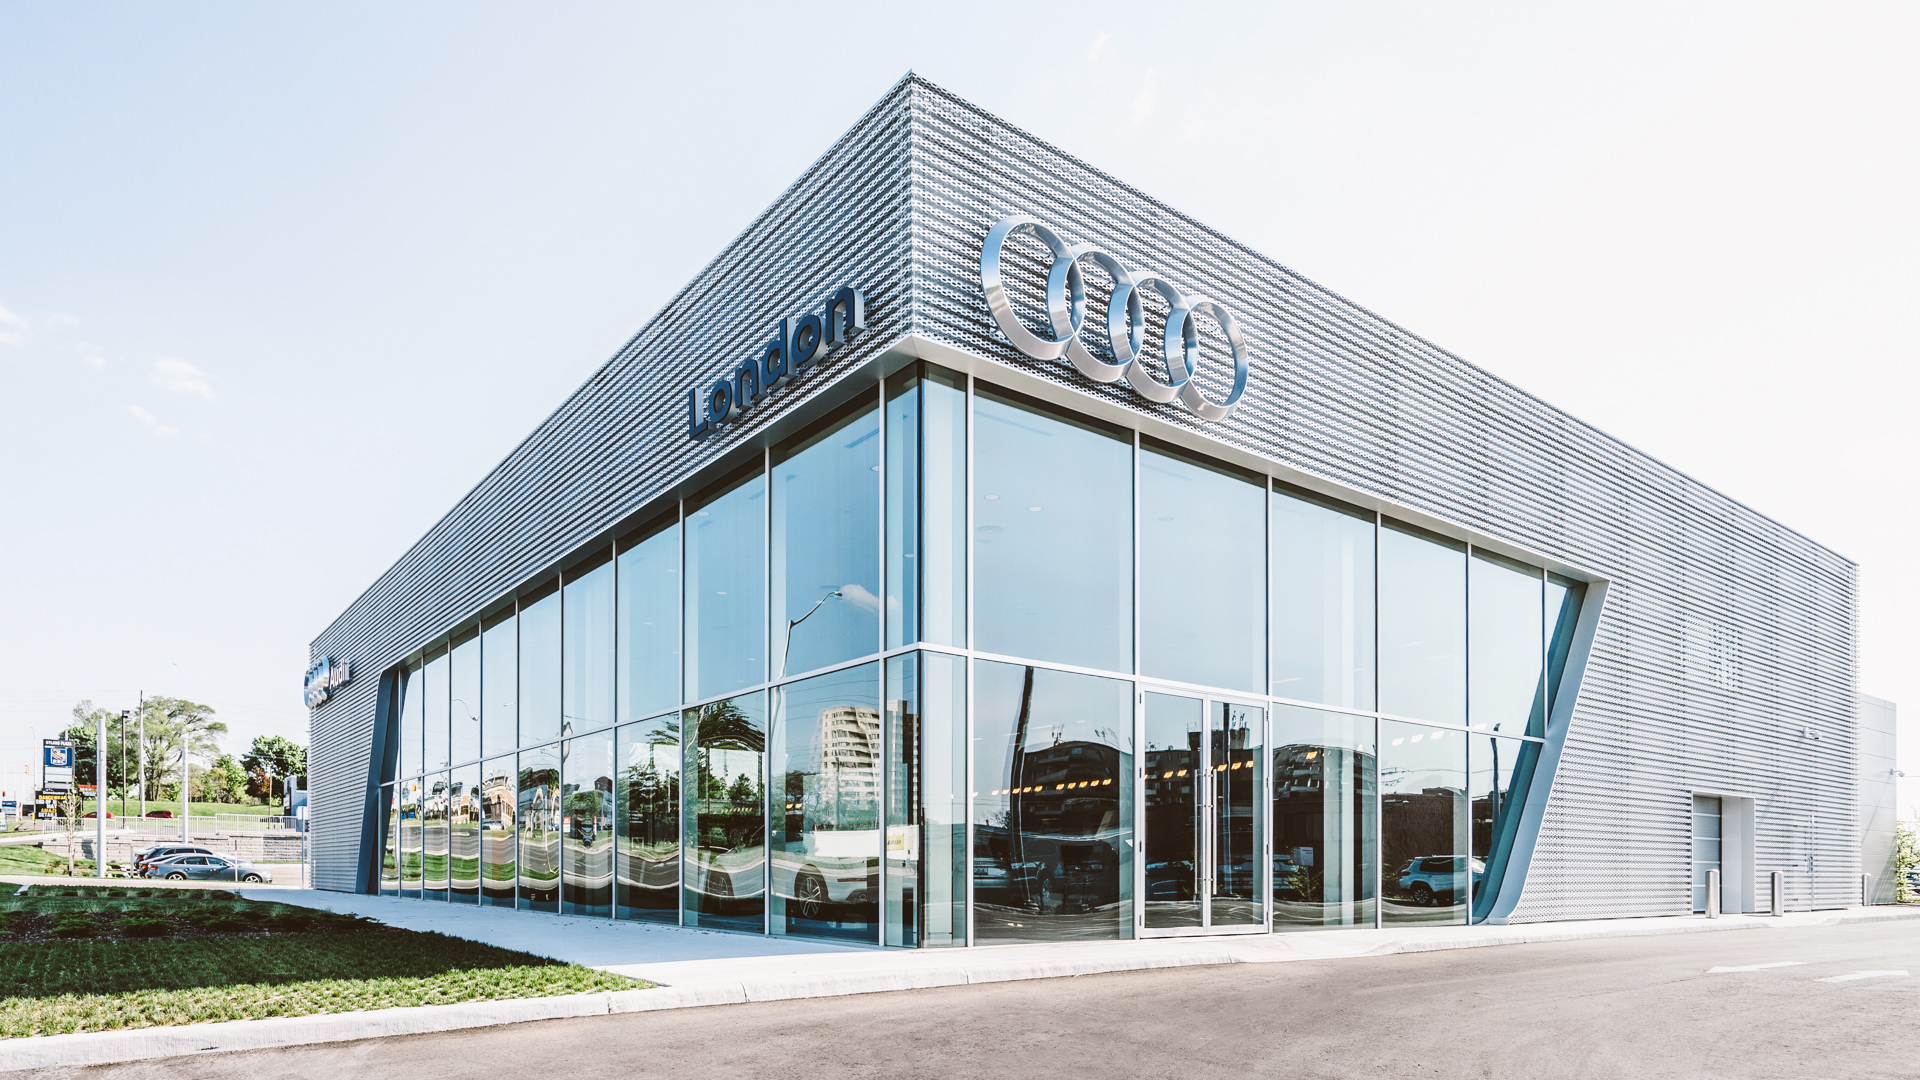 London Audi Architectural Photography by Scott Webb